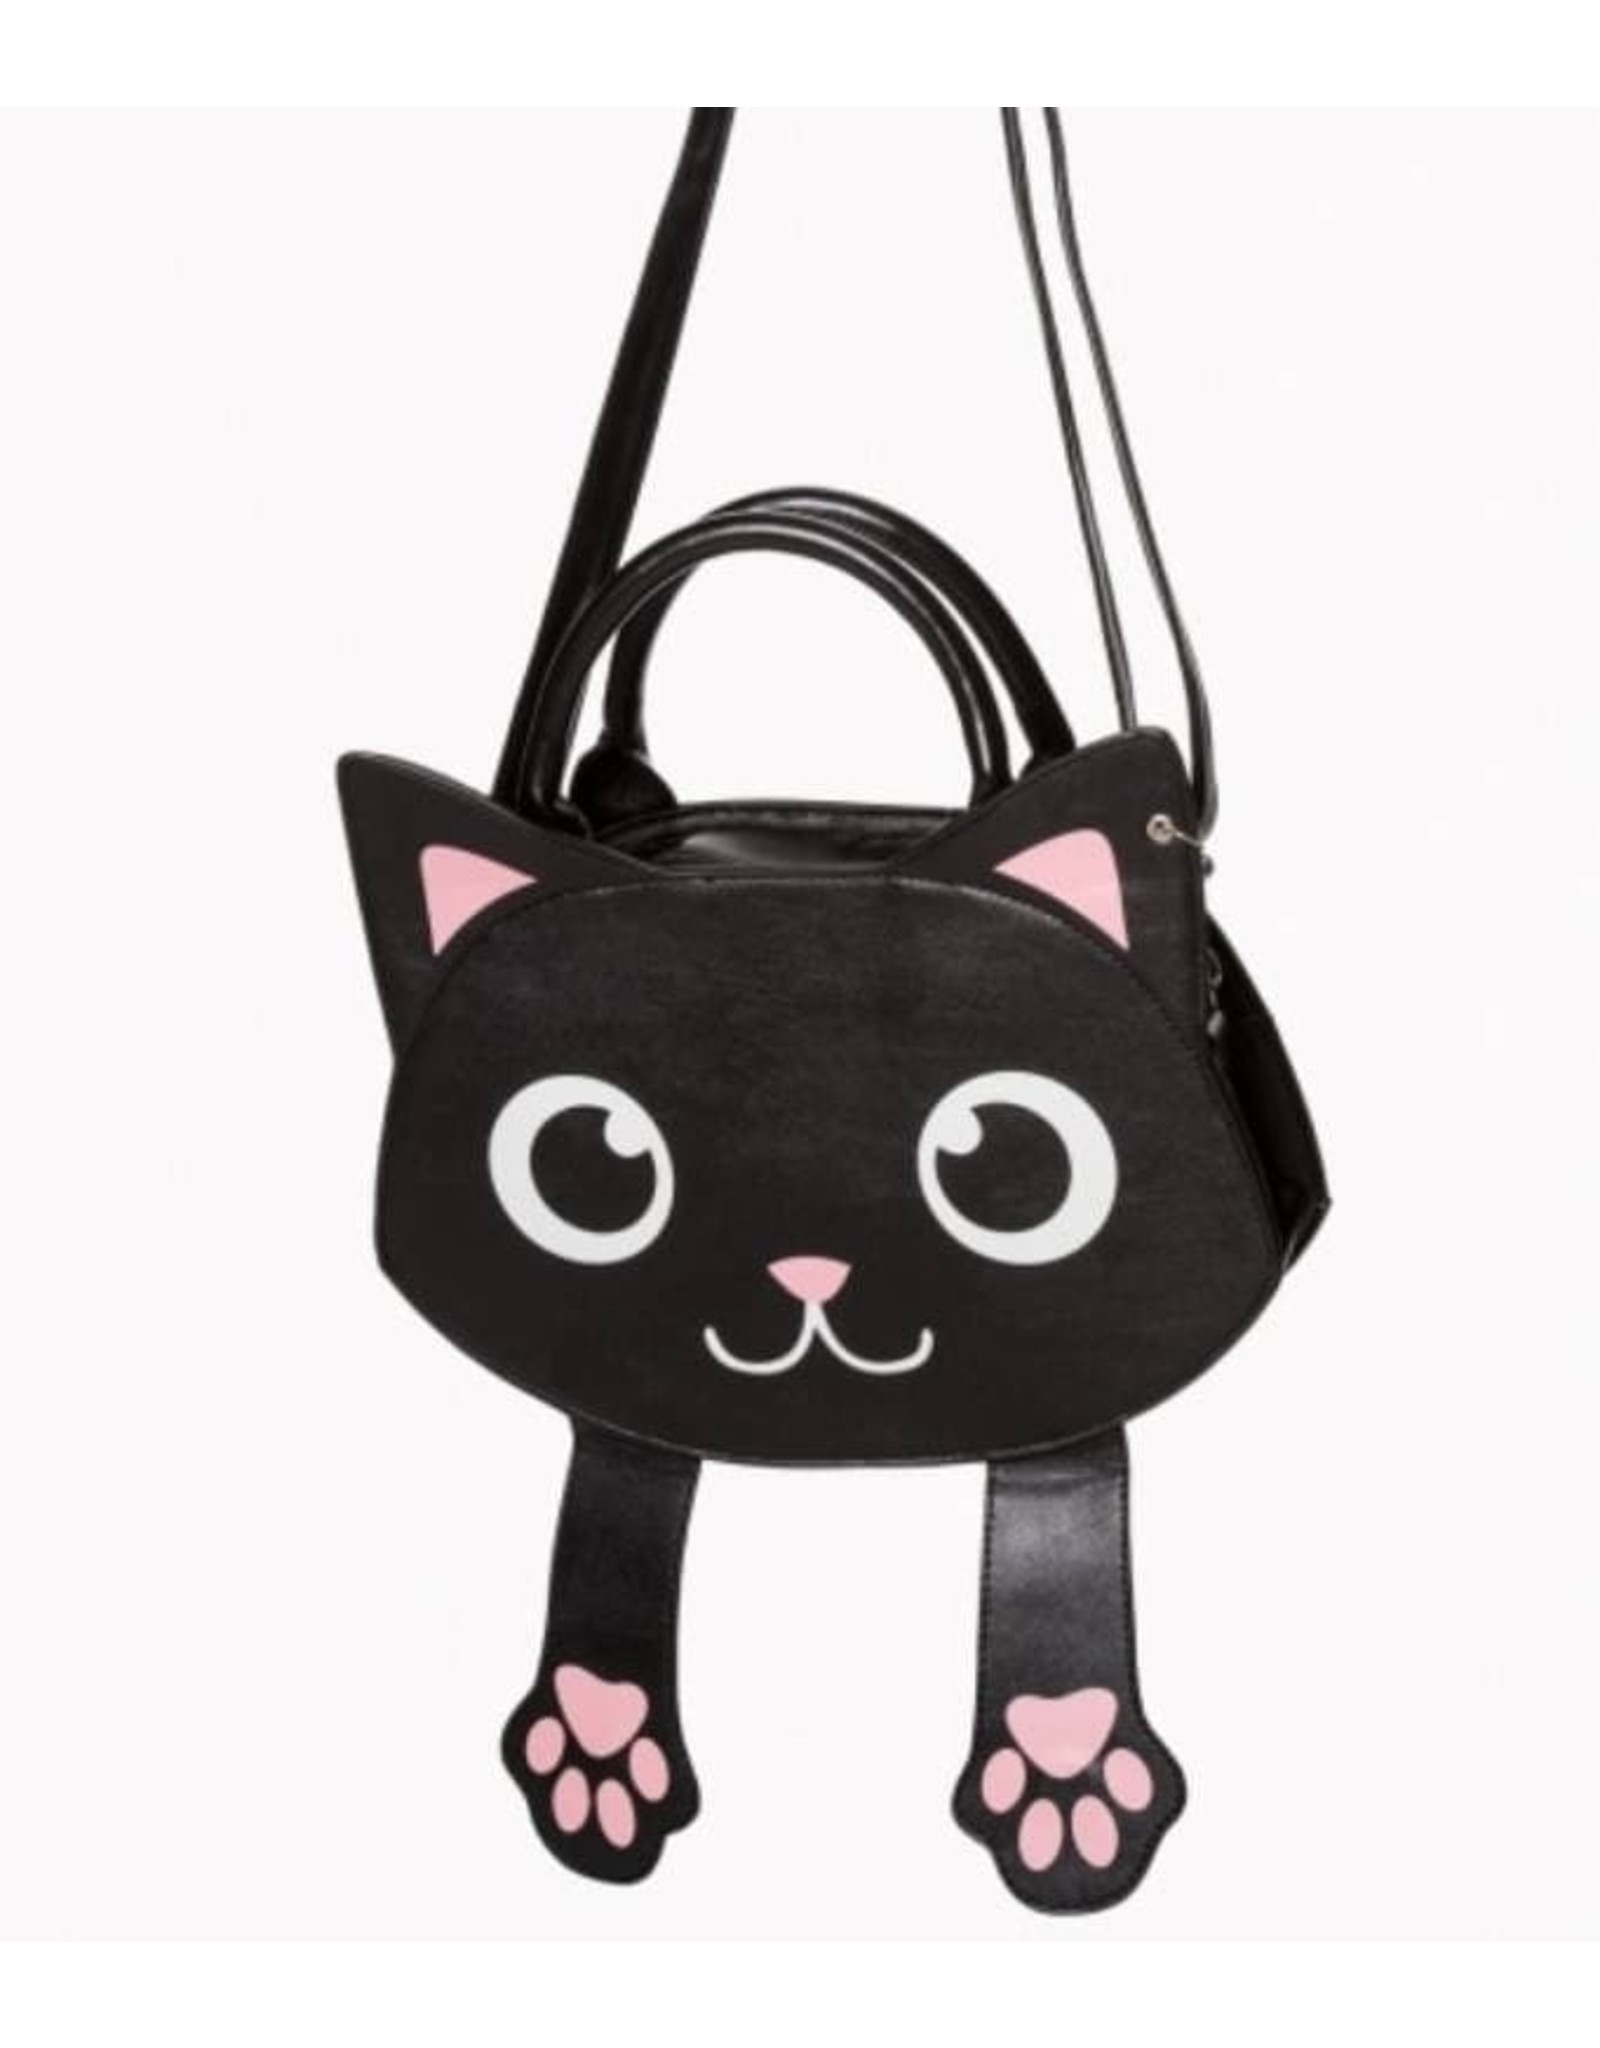 fantasy Fantasy bags - Banned Bag of Tricks Handbag